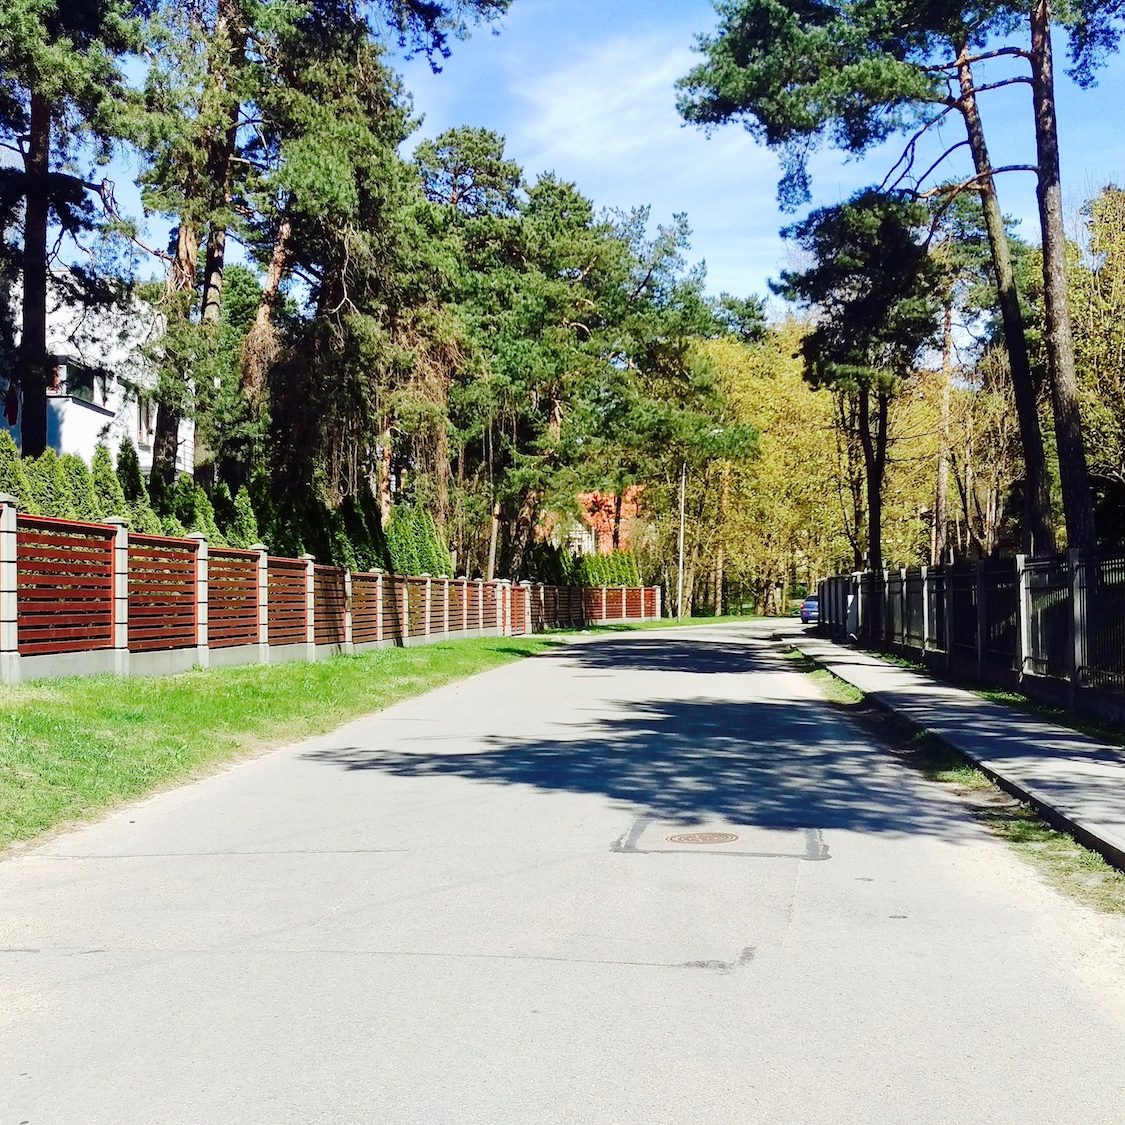 Hamburgas Street is one the most impressive areas in Mezaparks